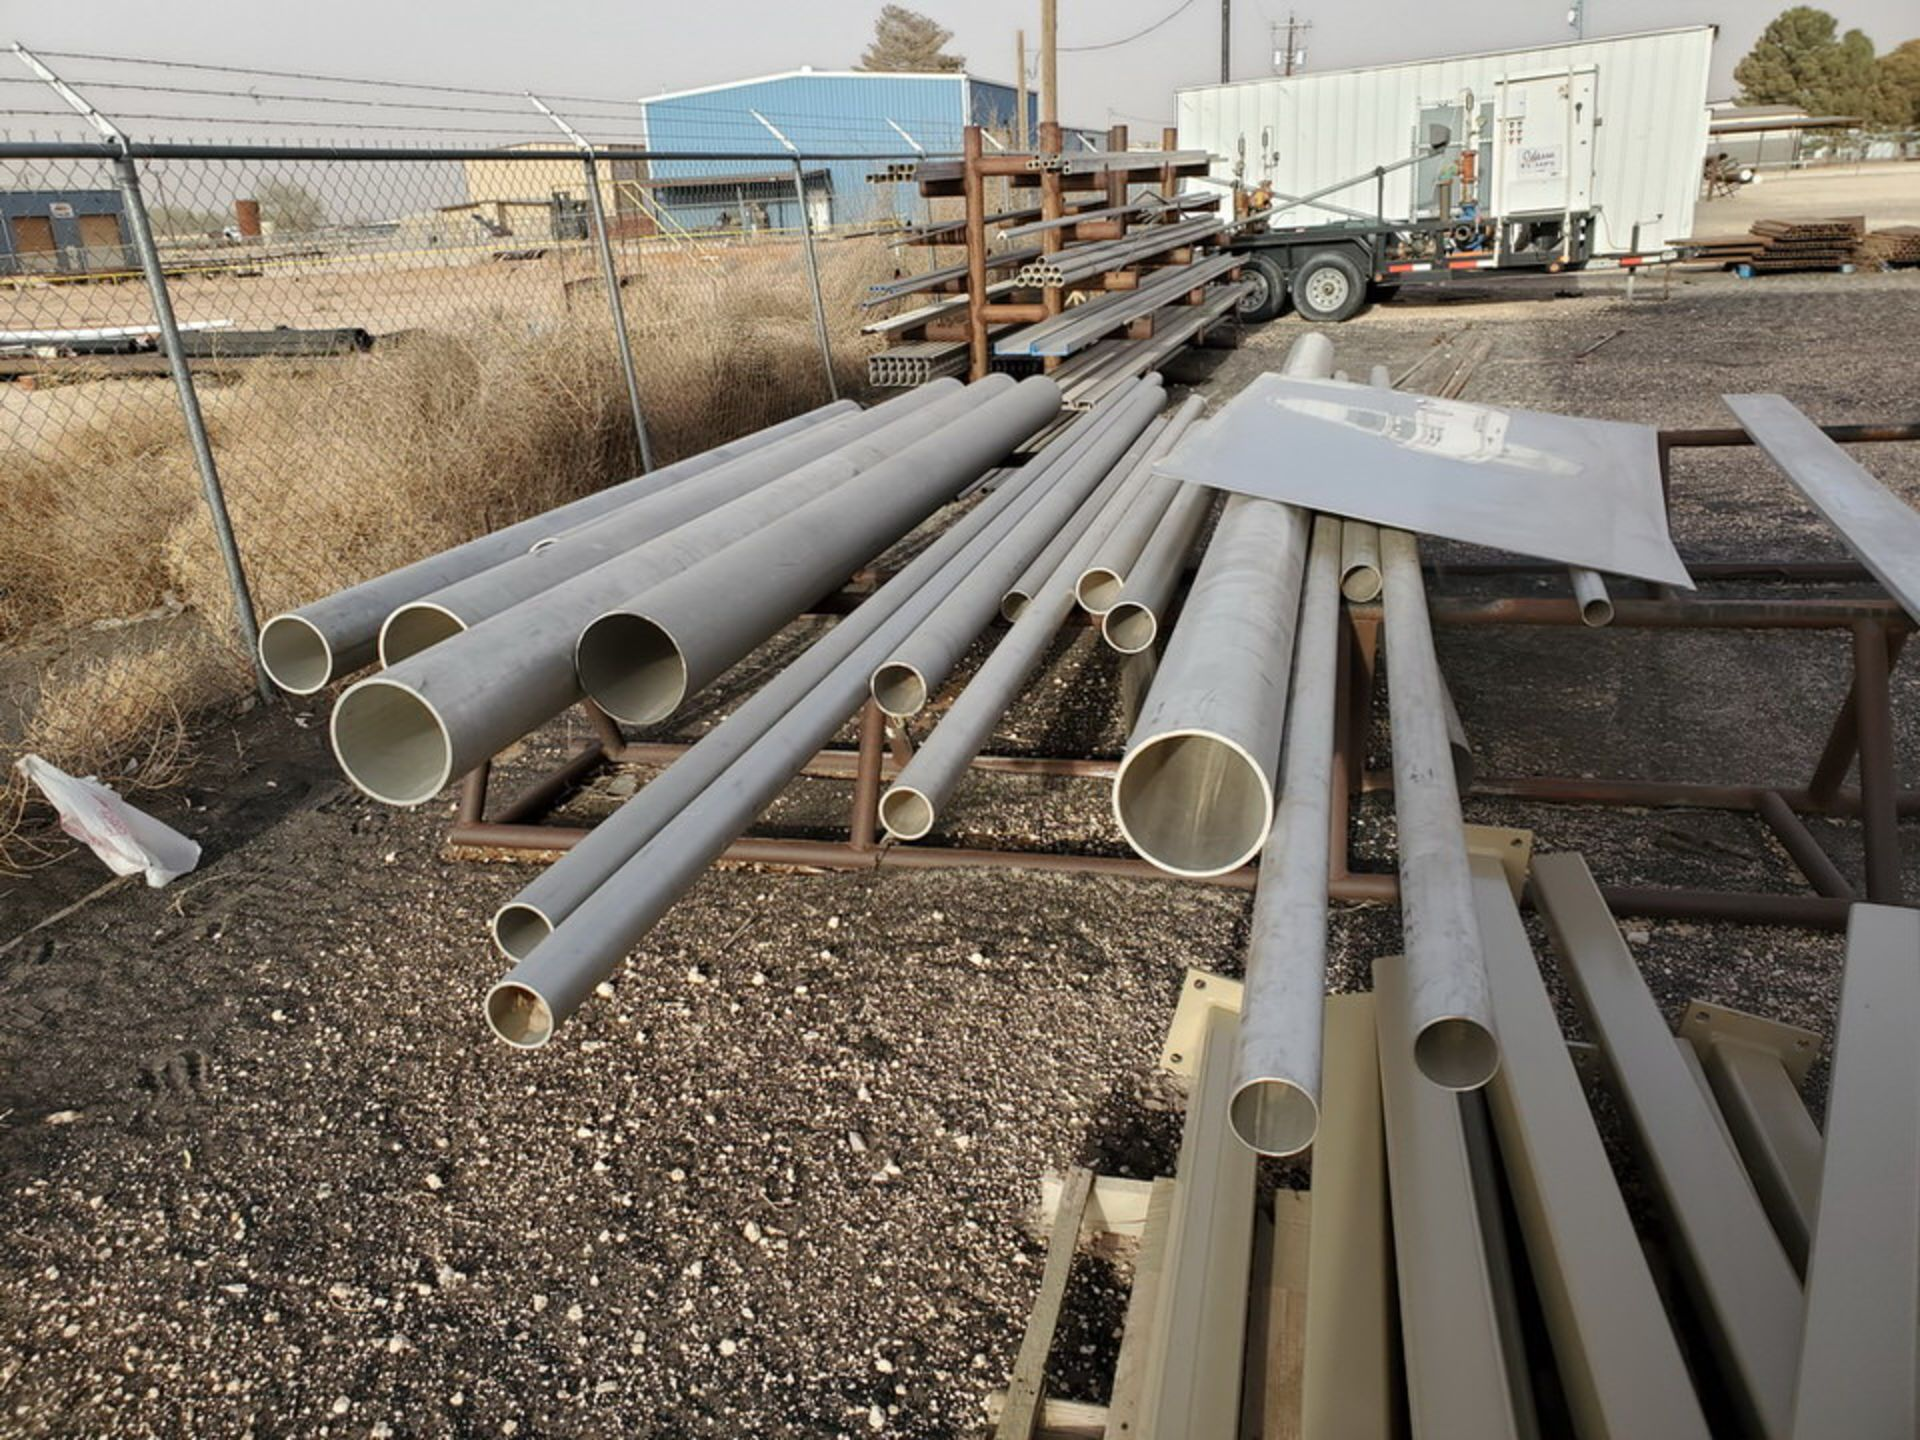 Assorted Matl. To Include But Not Limited To: S/S Flat Bar, Pipe & Sheets (Rack Excluded) - Image 18 of 22